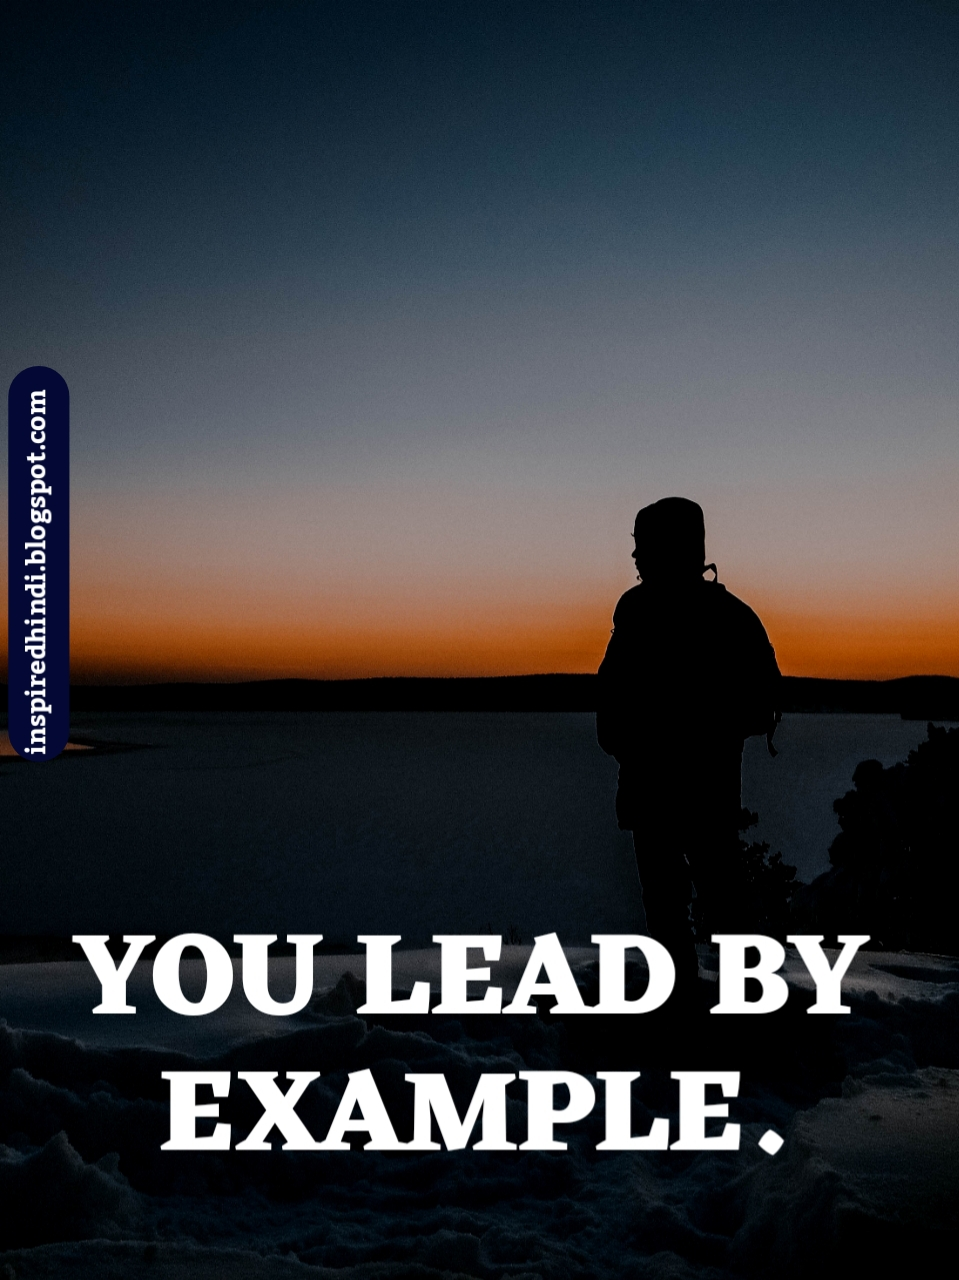 YOU LEAD BY EXAMPLE.